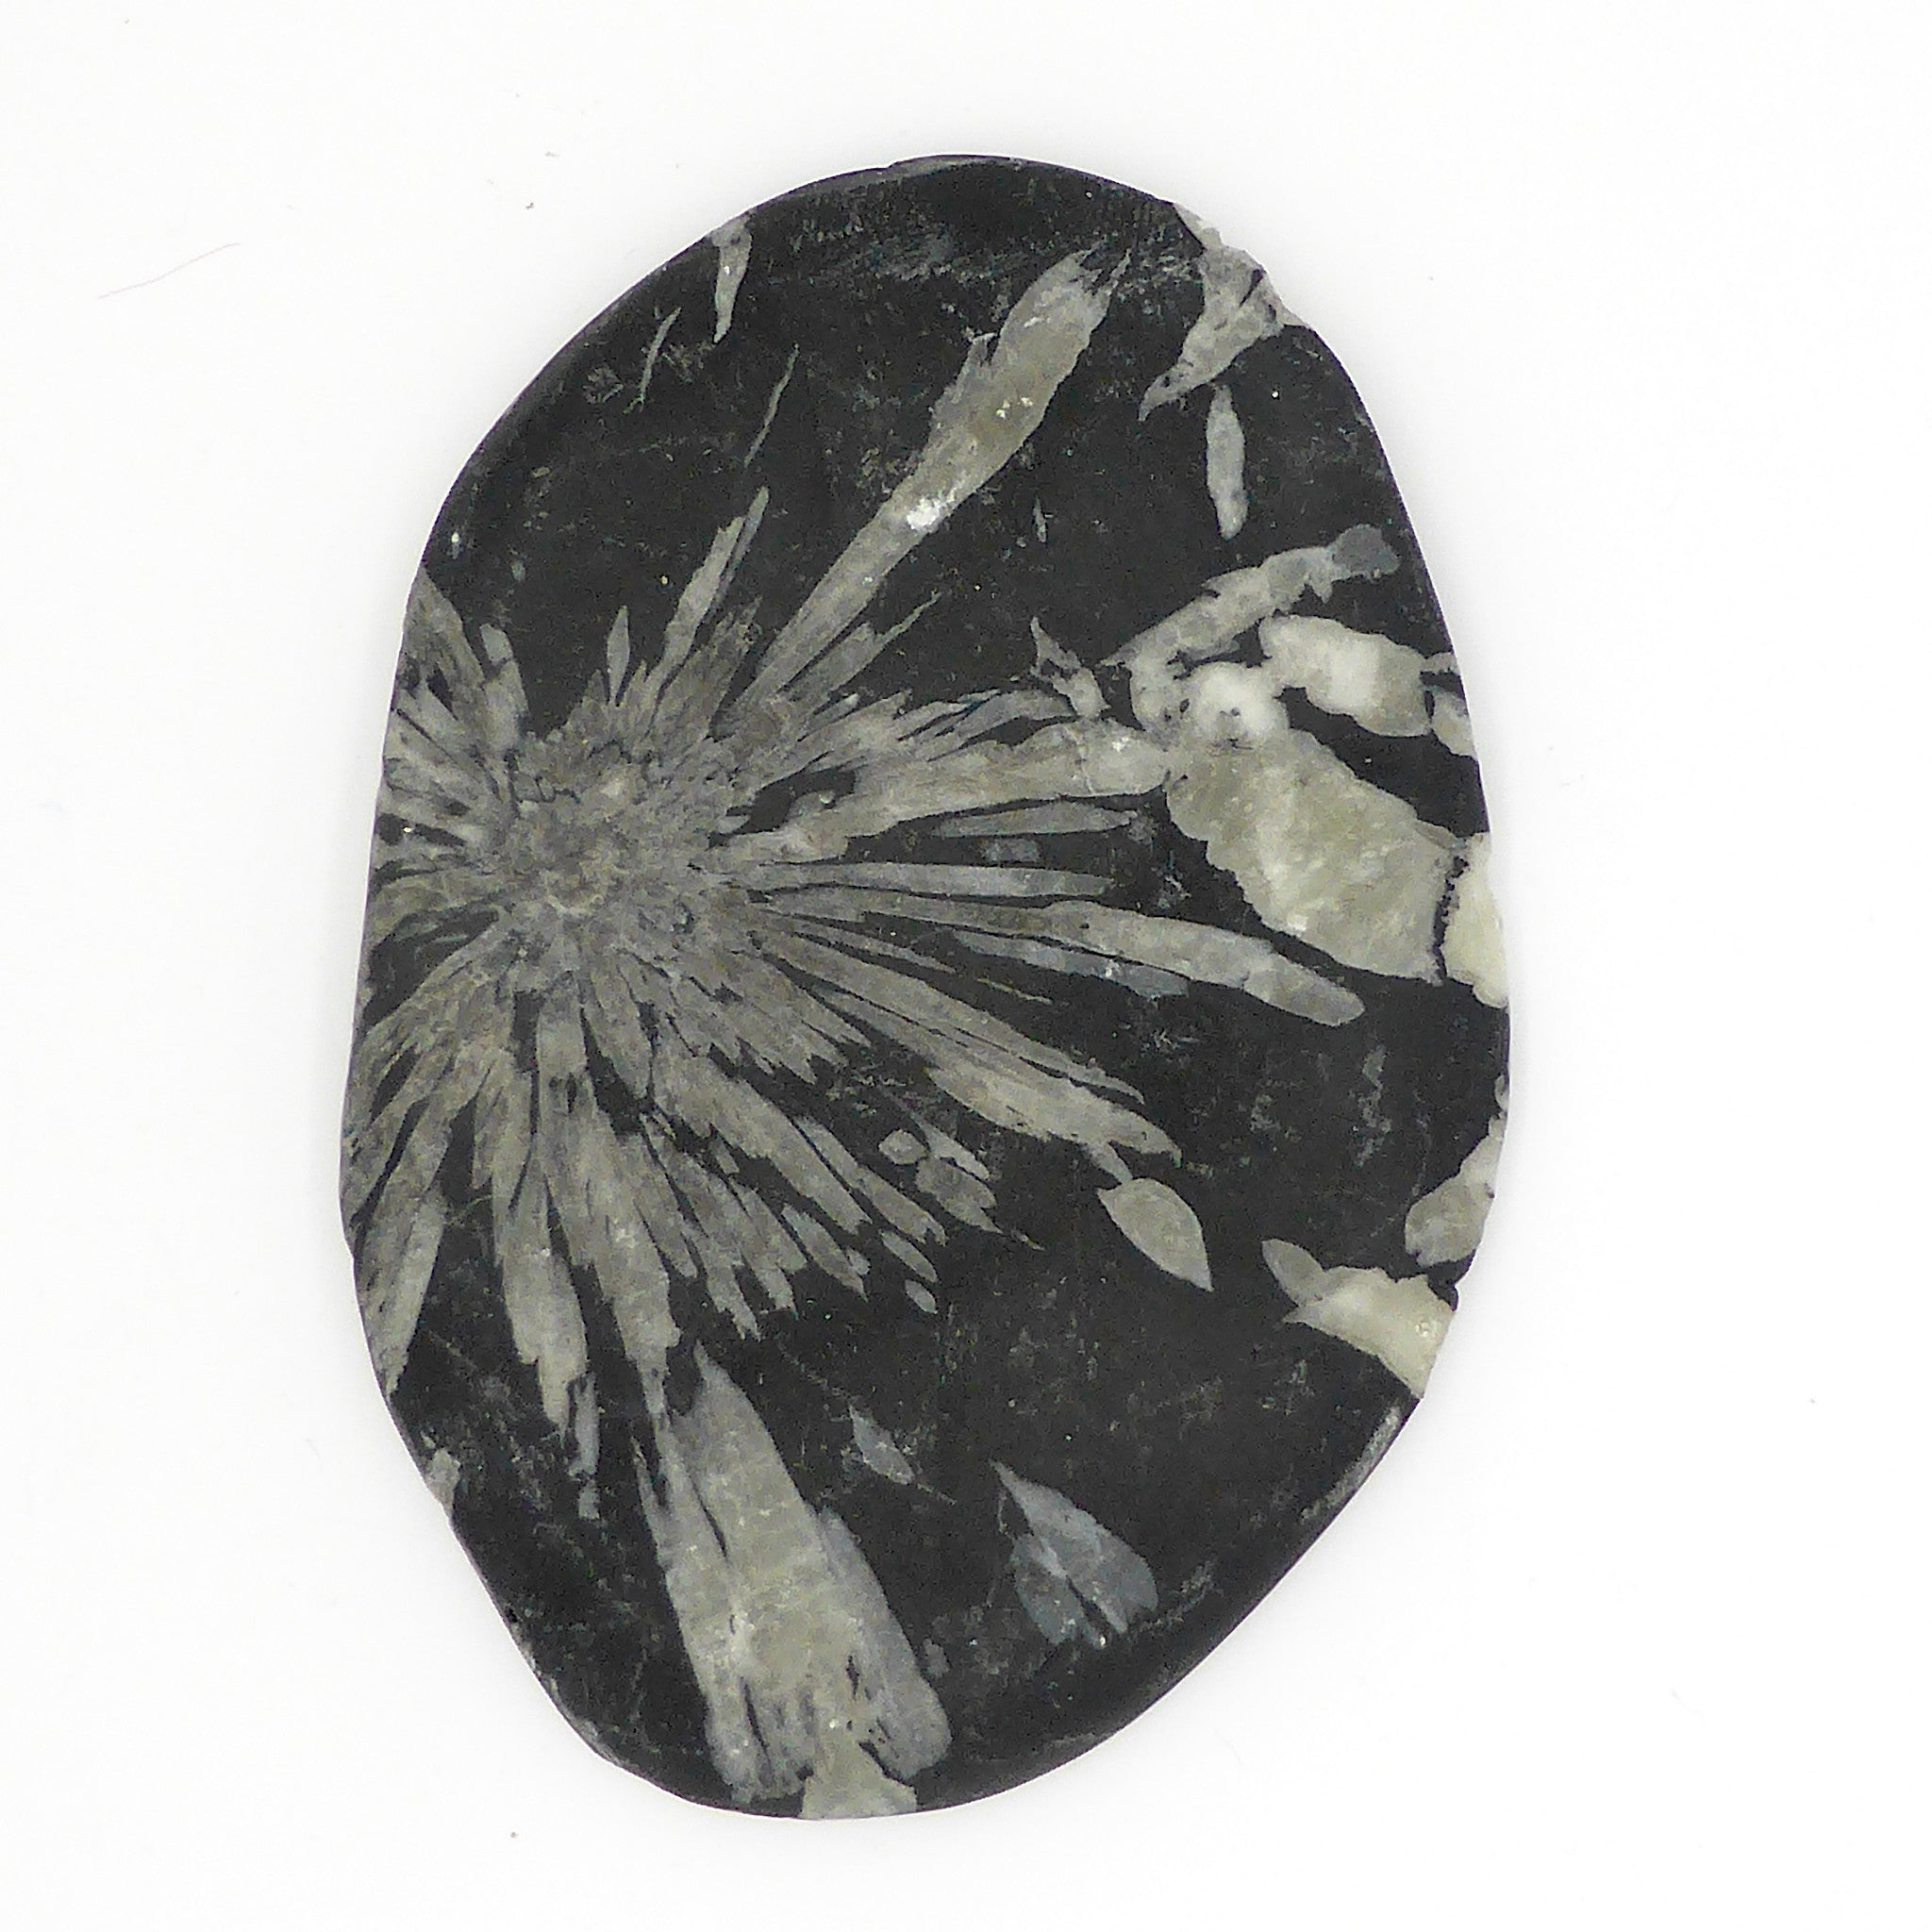 Chrysanthemum Stone is a that  Flower shape appears painted on to the black stone but is in fact completely natural crystal growth